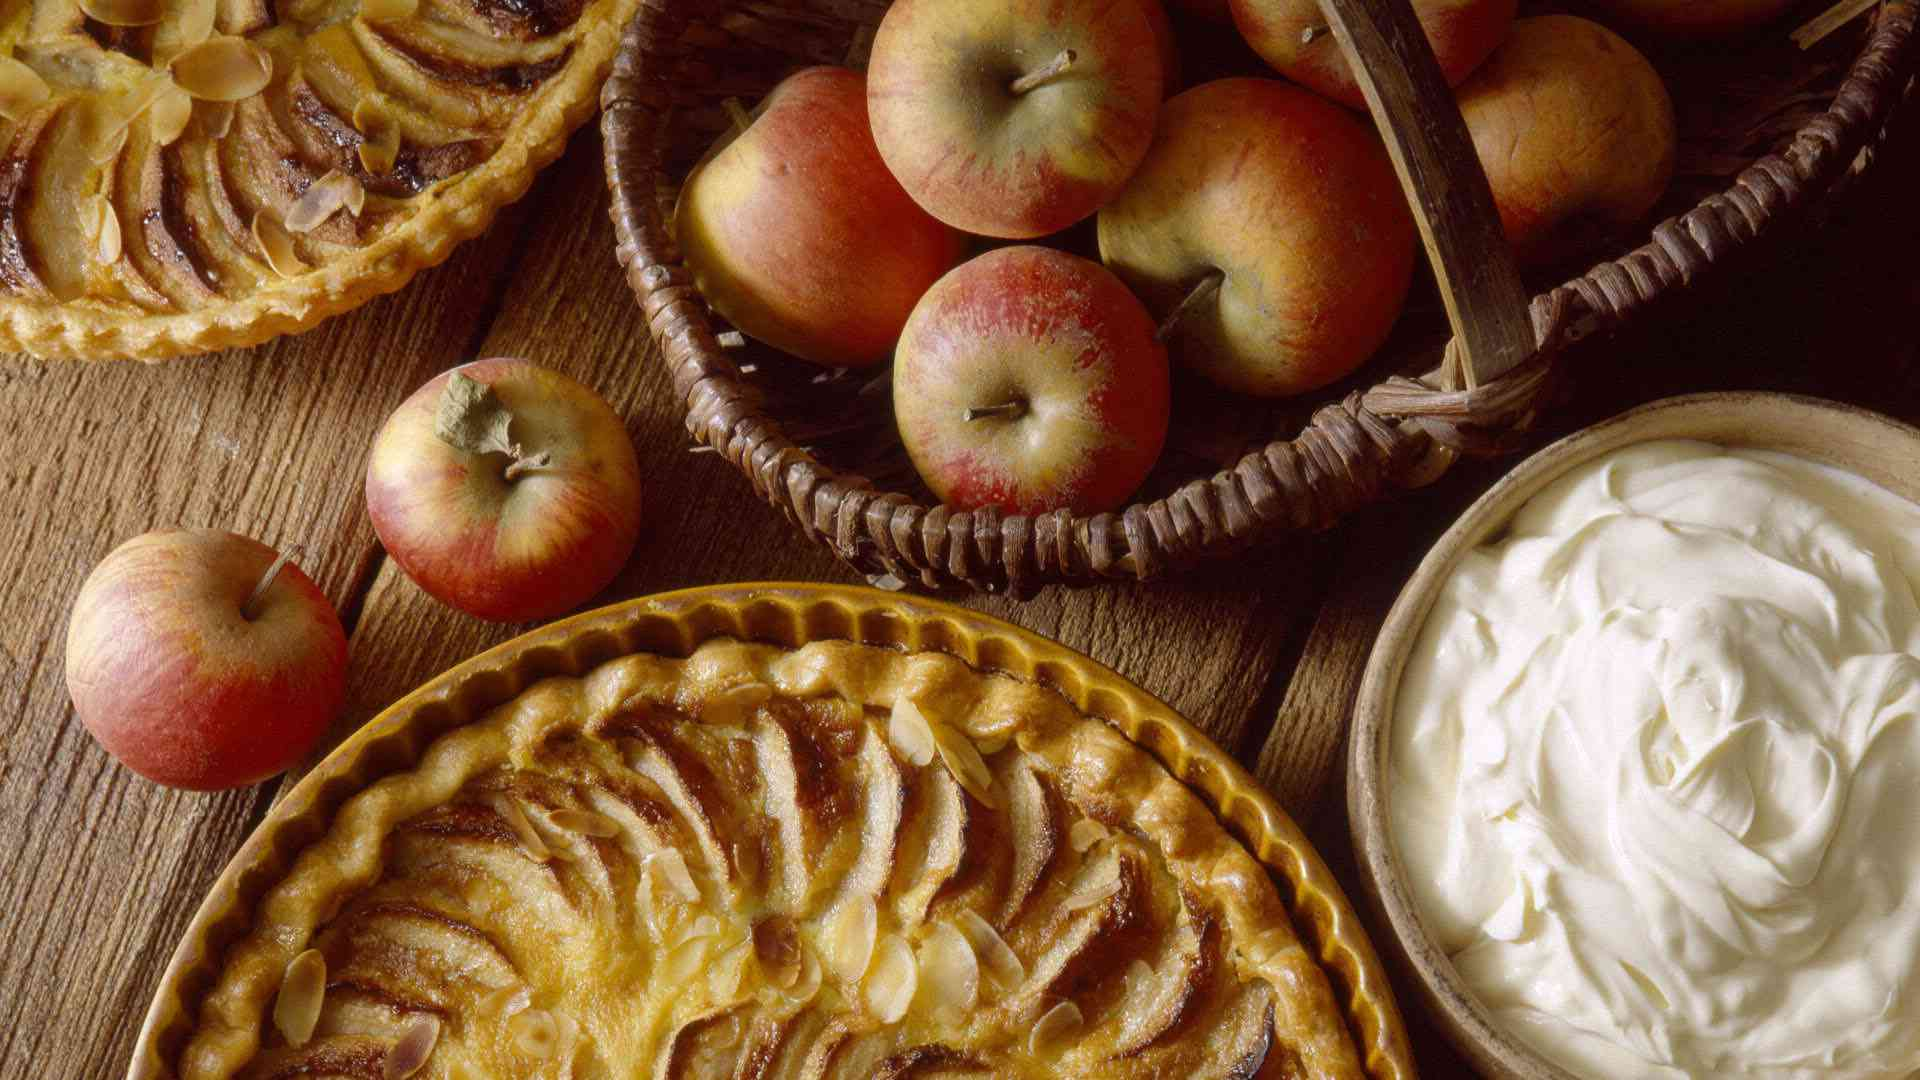 An apple pie and a basket of apples.